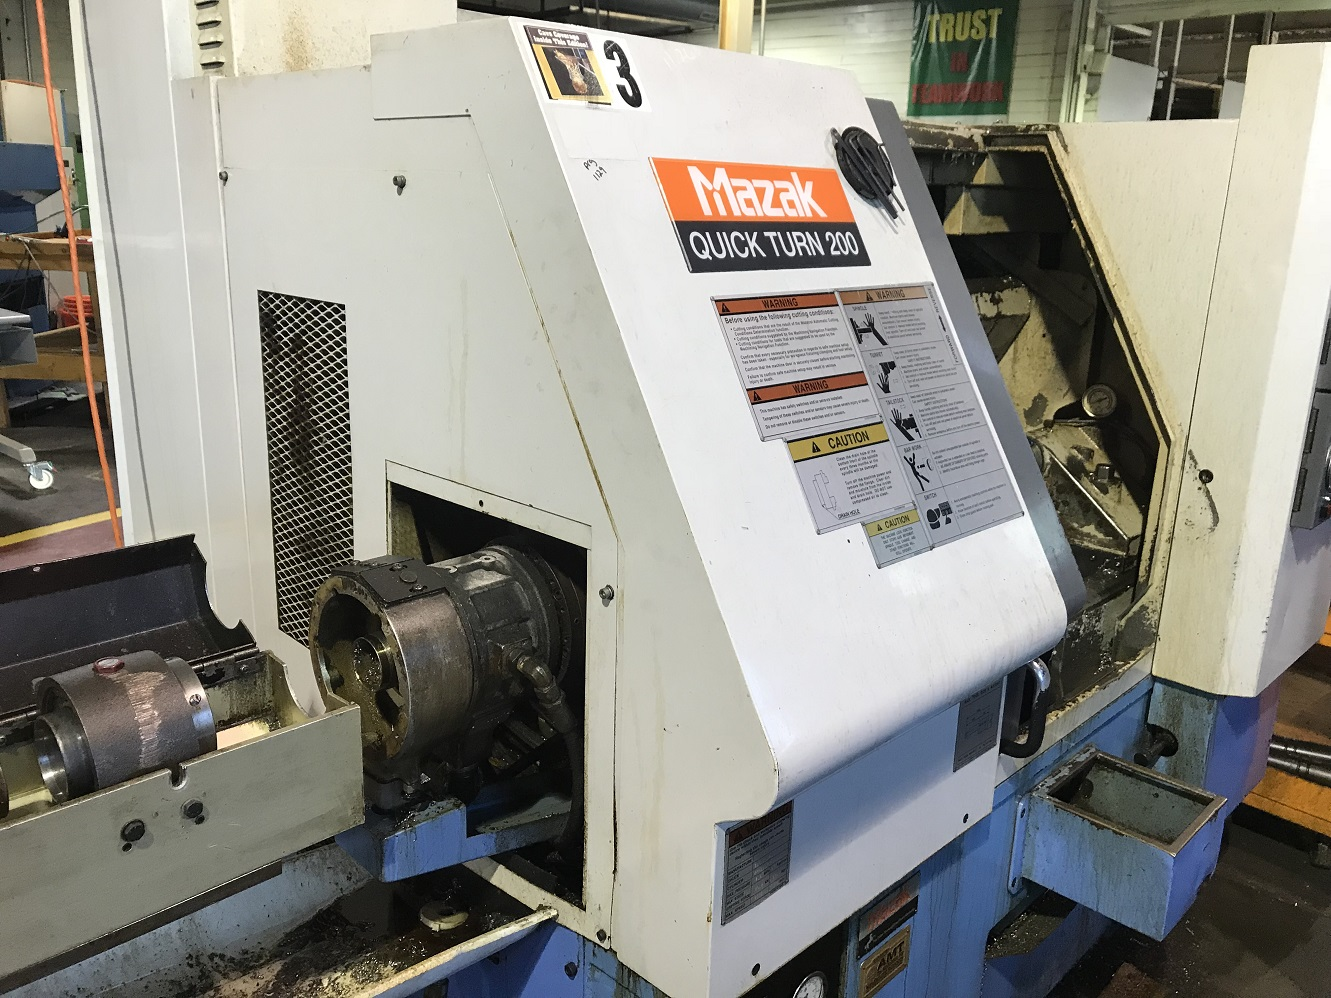 MAZAK QUICK TURN 200